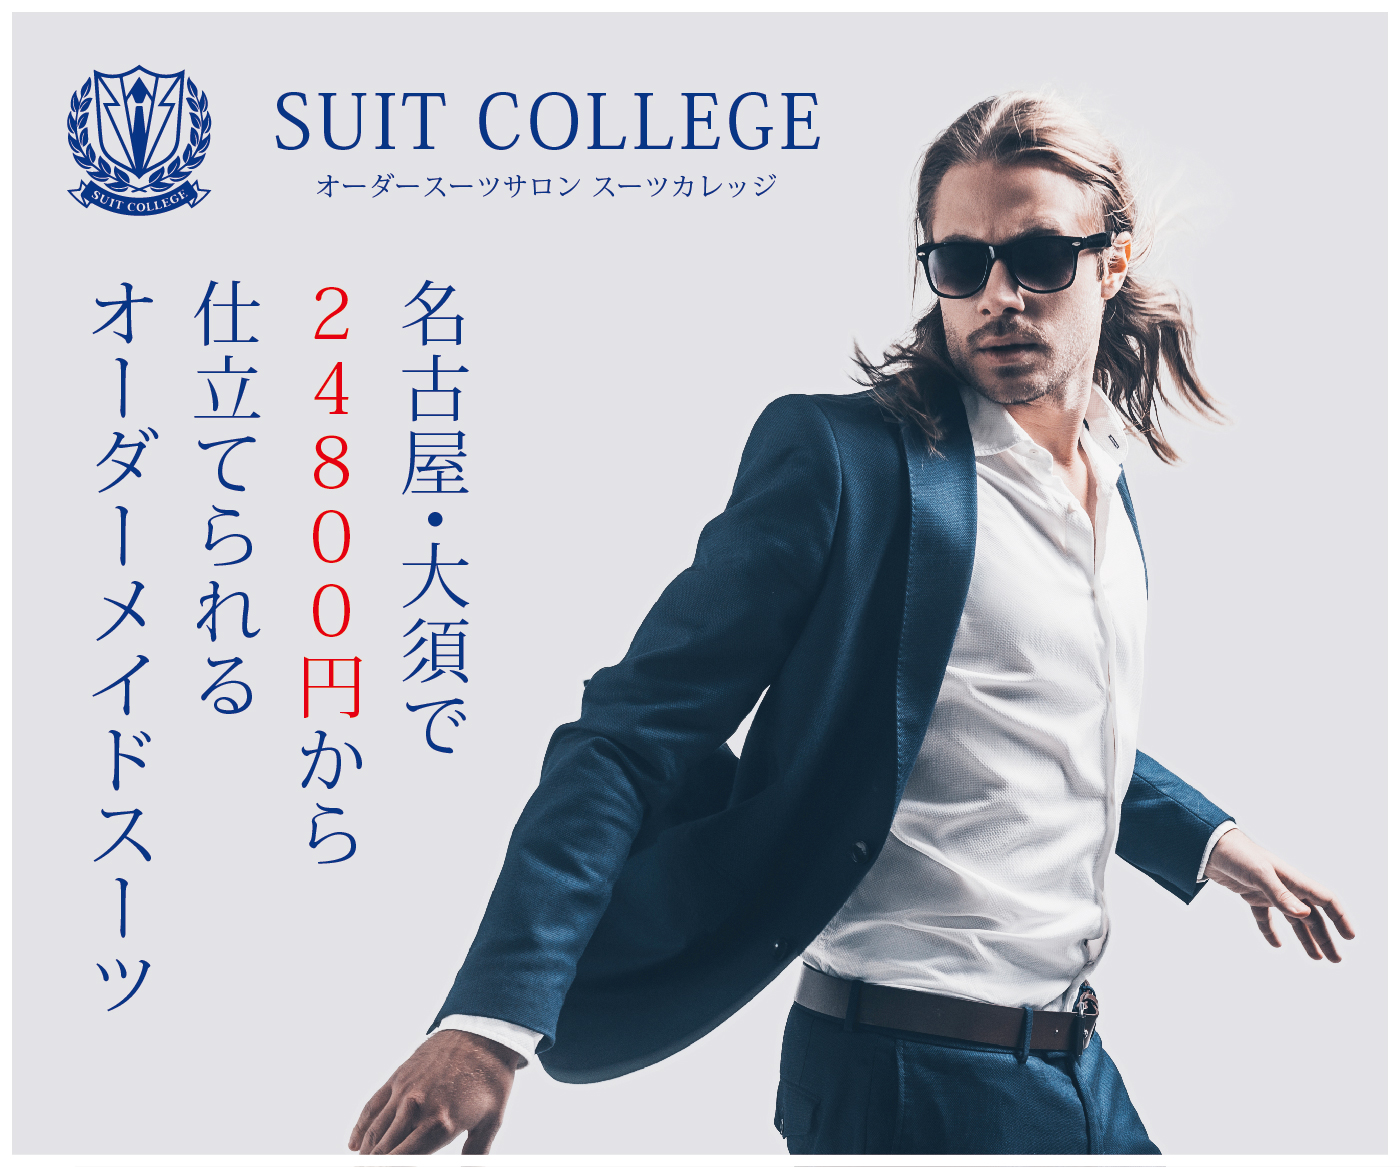 https://suit-college.com/order,suit.php